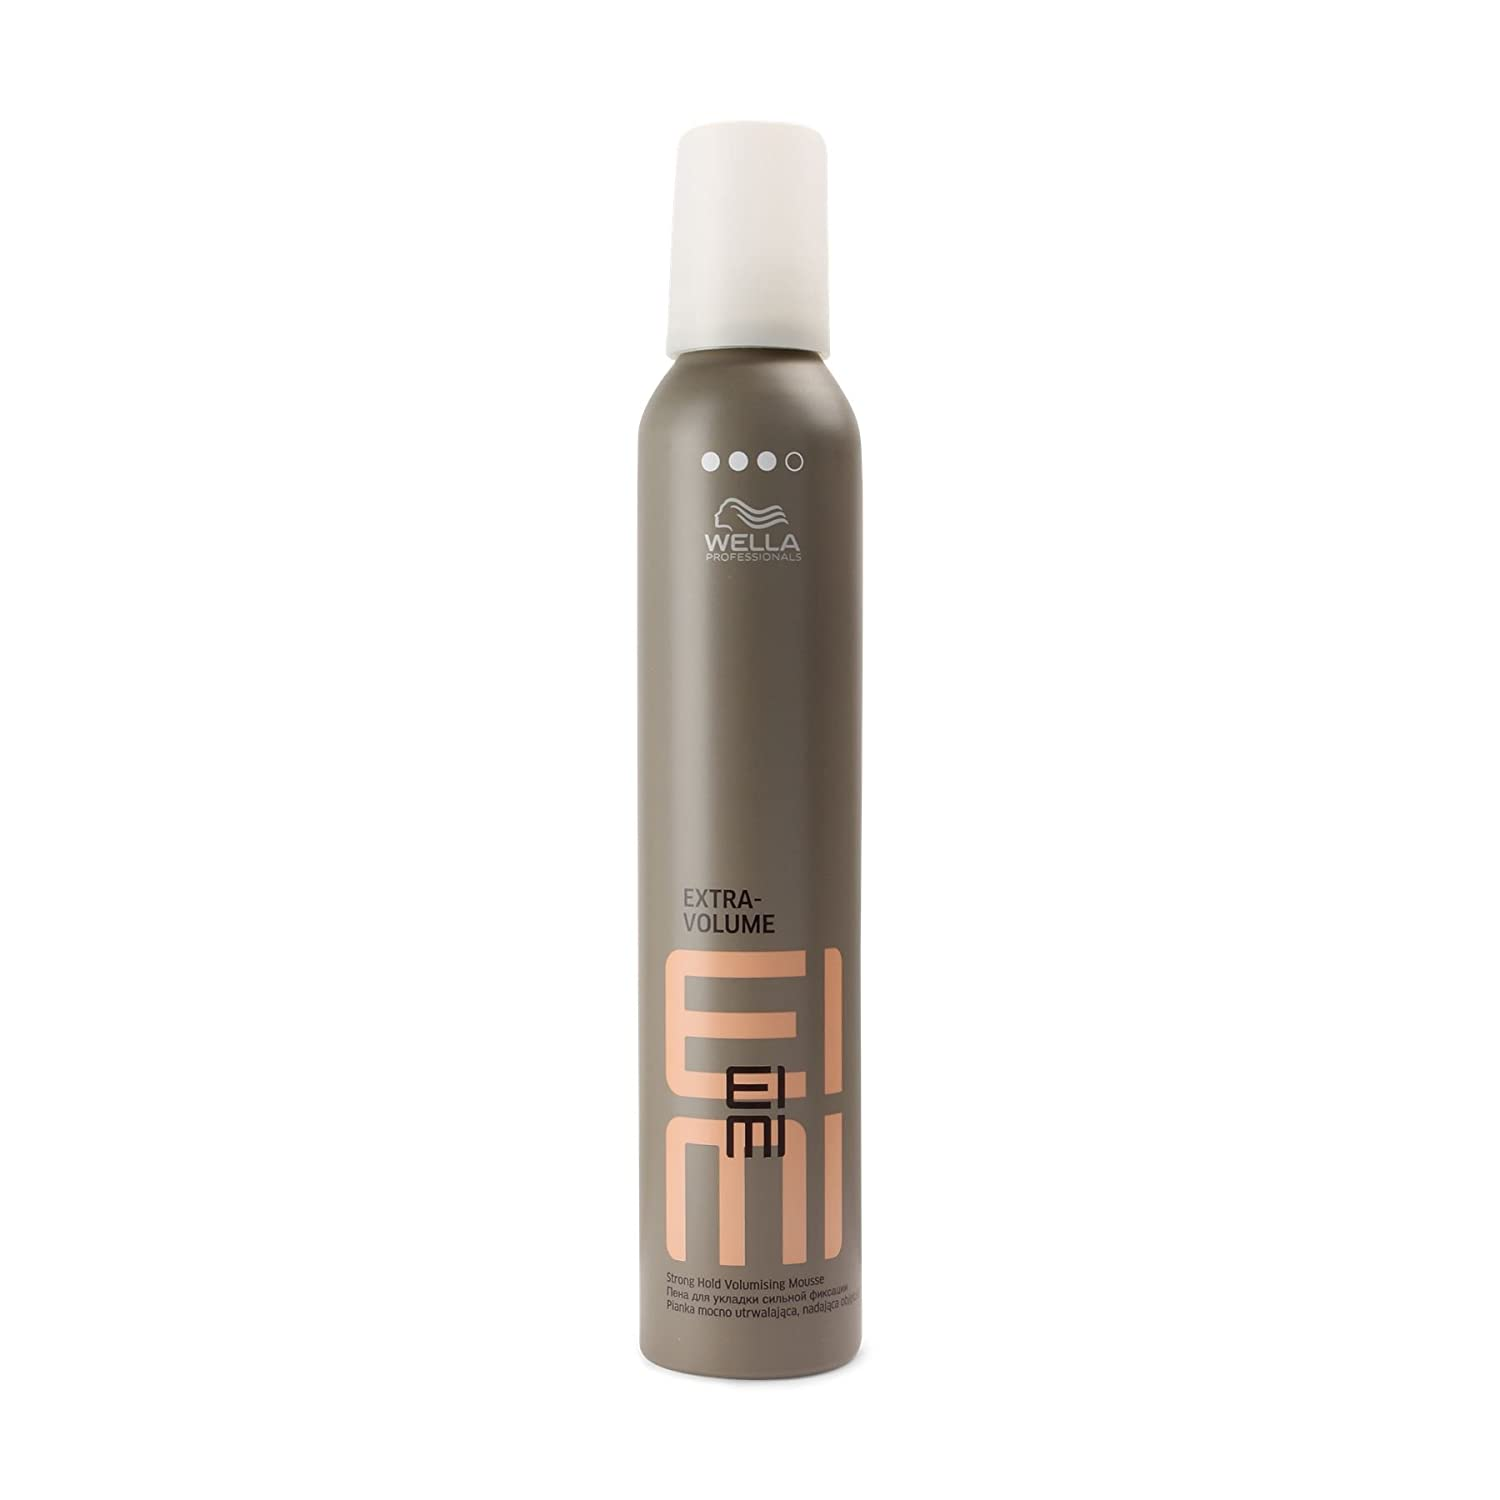 Wella Professionals Eimi Travel Size Extra Volume Styling Mousse - 75ml